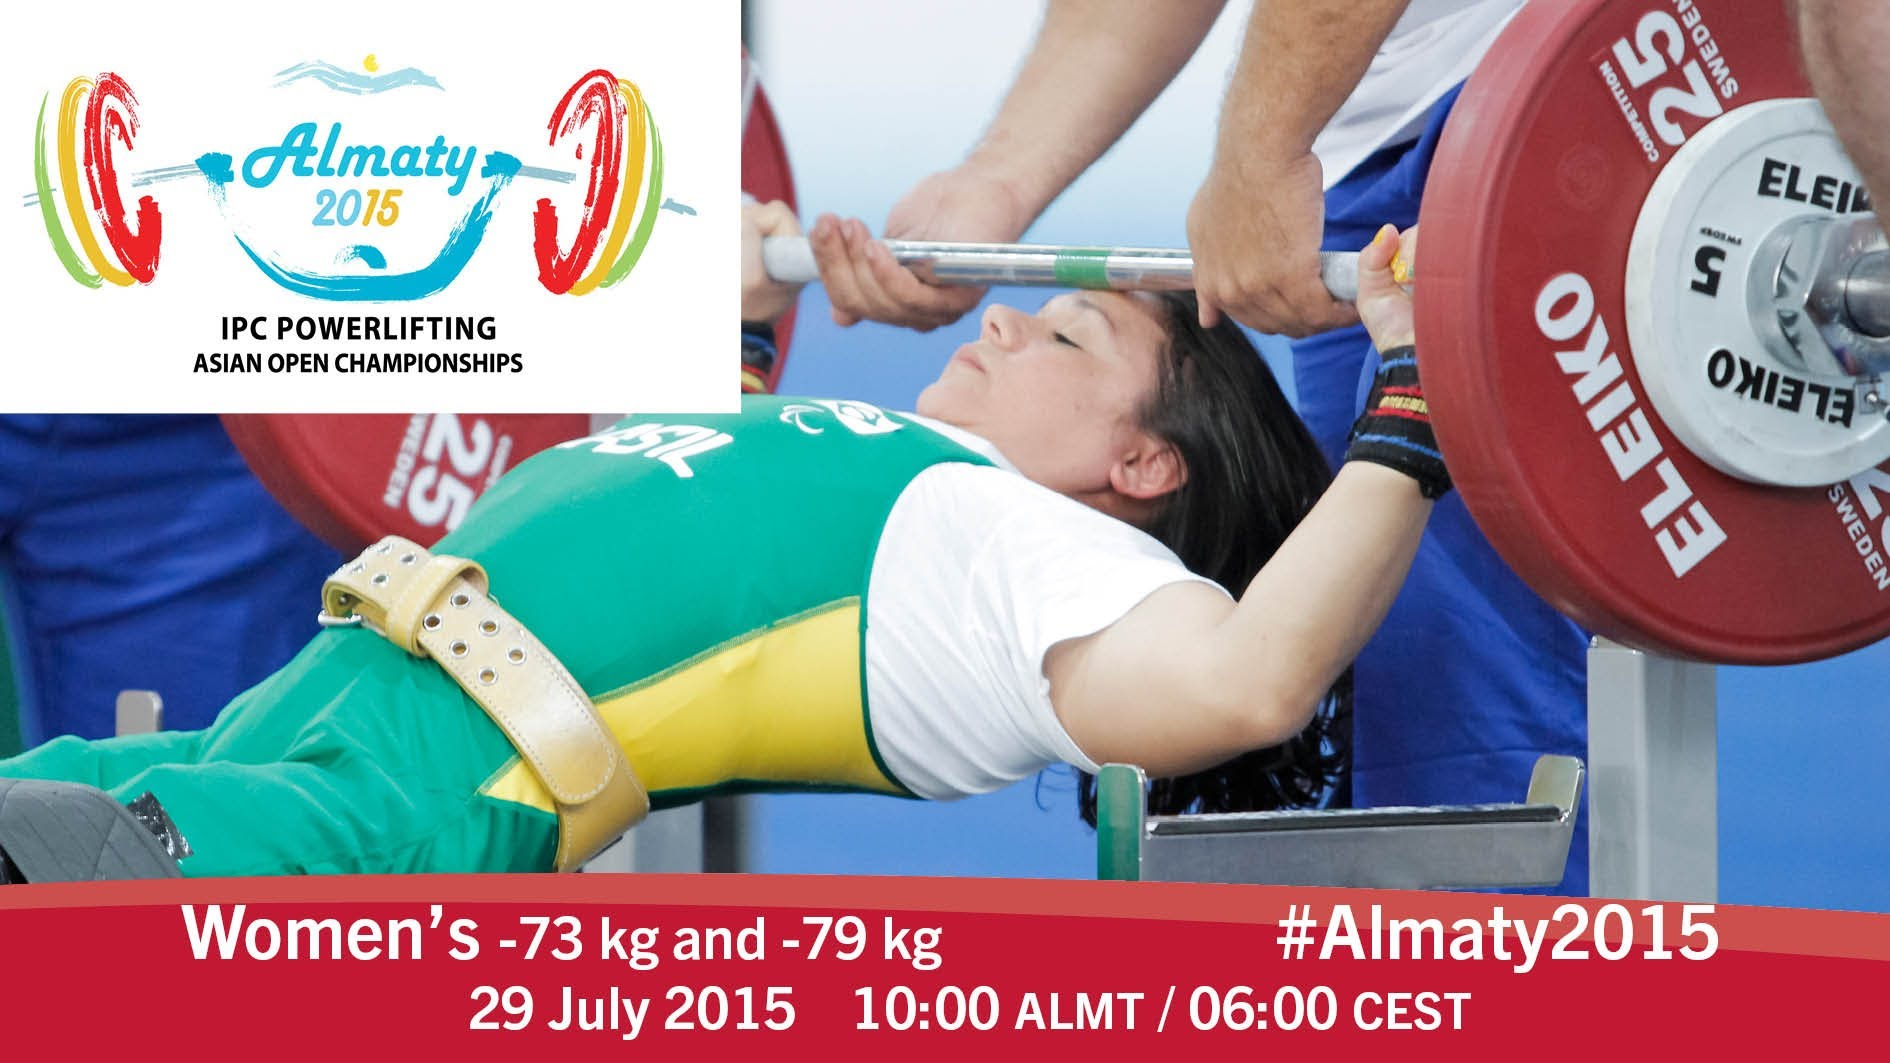 Women's -73 kg and -79 kg | 2015 IPC Powerlifting Asian Open Championships, Almaty